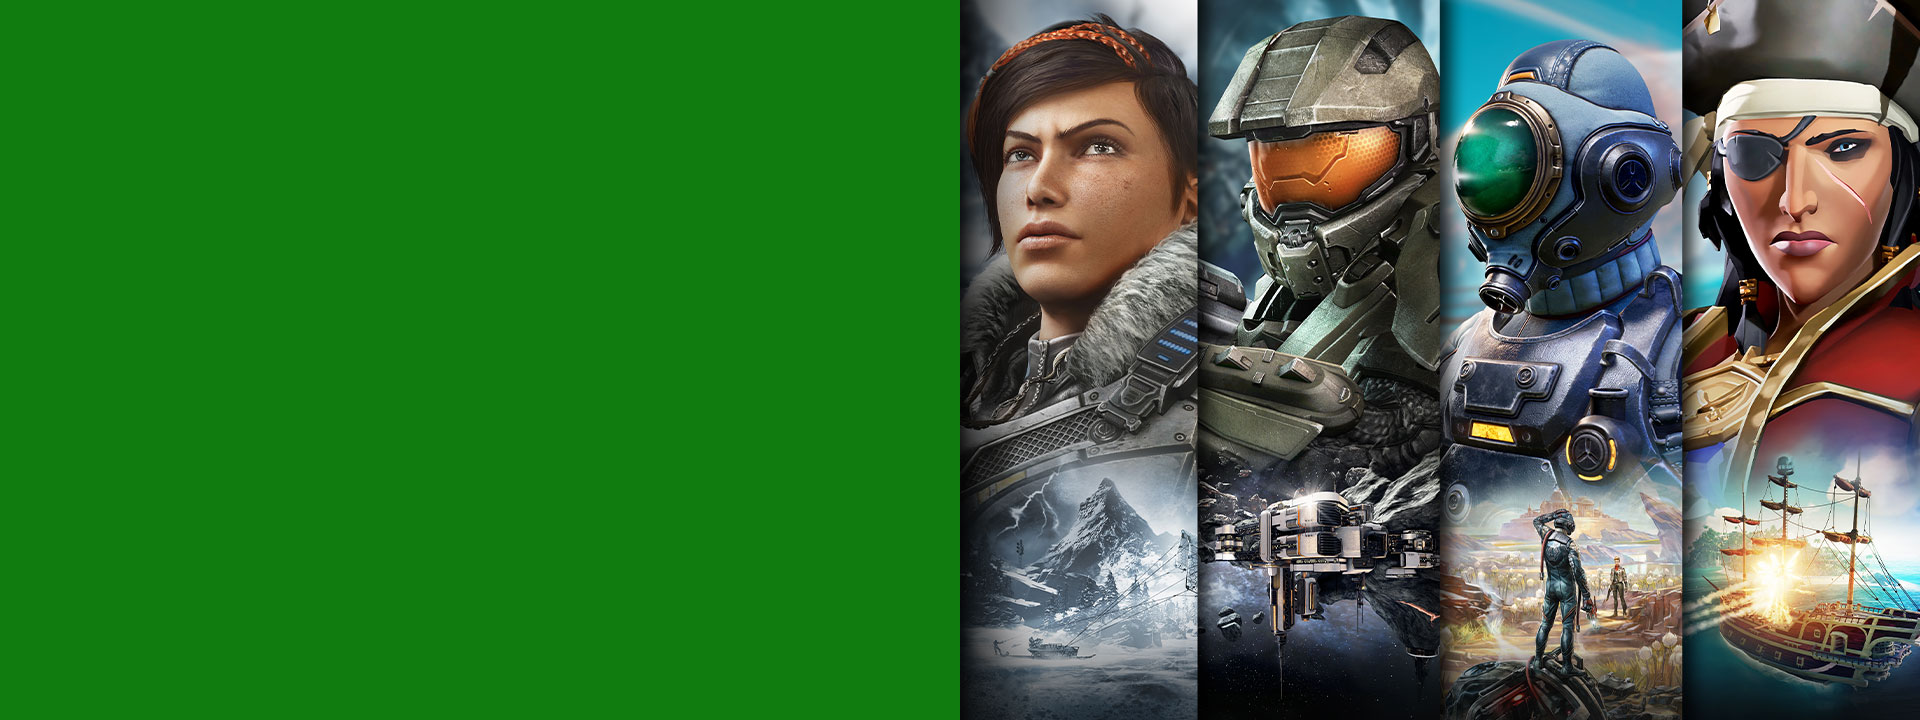 Postavy z her Gears 5, Halo, The Outer Worlds a Sea of Thieves v Xbox Game Pass.